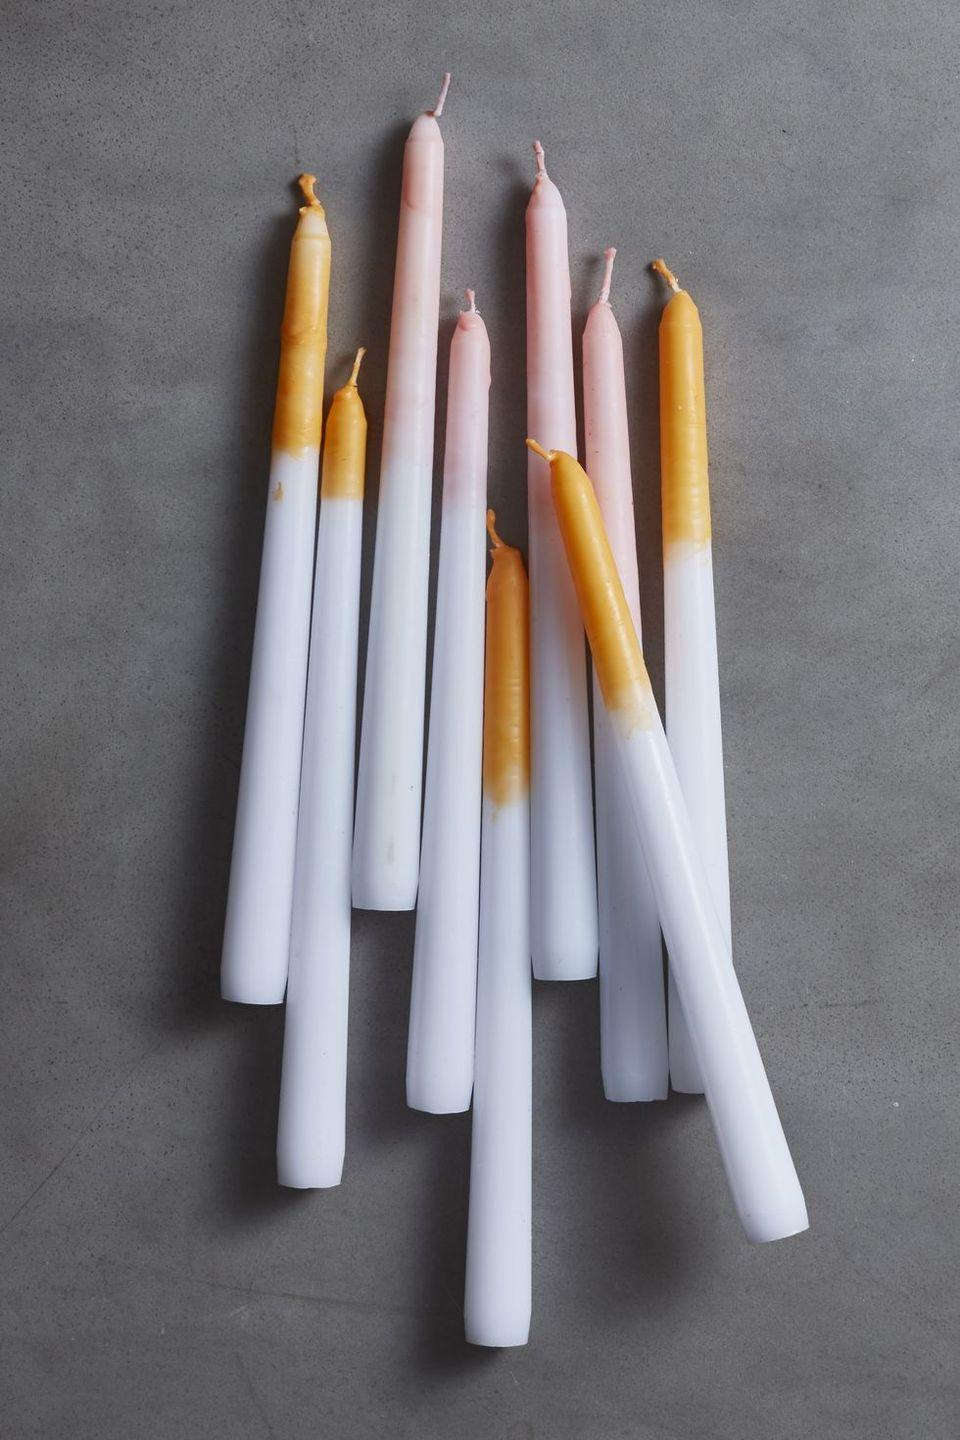 """<p>Up for a fairly easy DIY candle project? Begin by shaving orange crayons into melted max. Stir and then dip white candlesticks into the mixture. Place them in your favorite candleholders once they're all dry. </p><p><a class=""""link rapid-noclick-resp"""" href=""""https://www.target.com/p/10-12pk-unscented-taper-candles-white-made-by-design-8482/-/A-54013258"""" rel=""""nofollow noopener"""" target=""""_blank"""" data-ylk=""""slk:SHOP WHITE CANDLES"""">SHOP WHITE CANDLES</a></p>"""